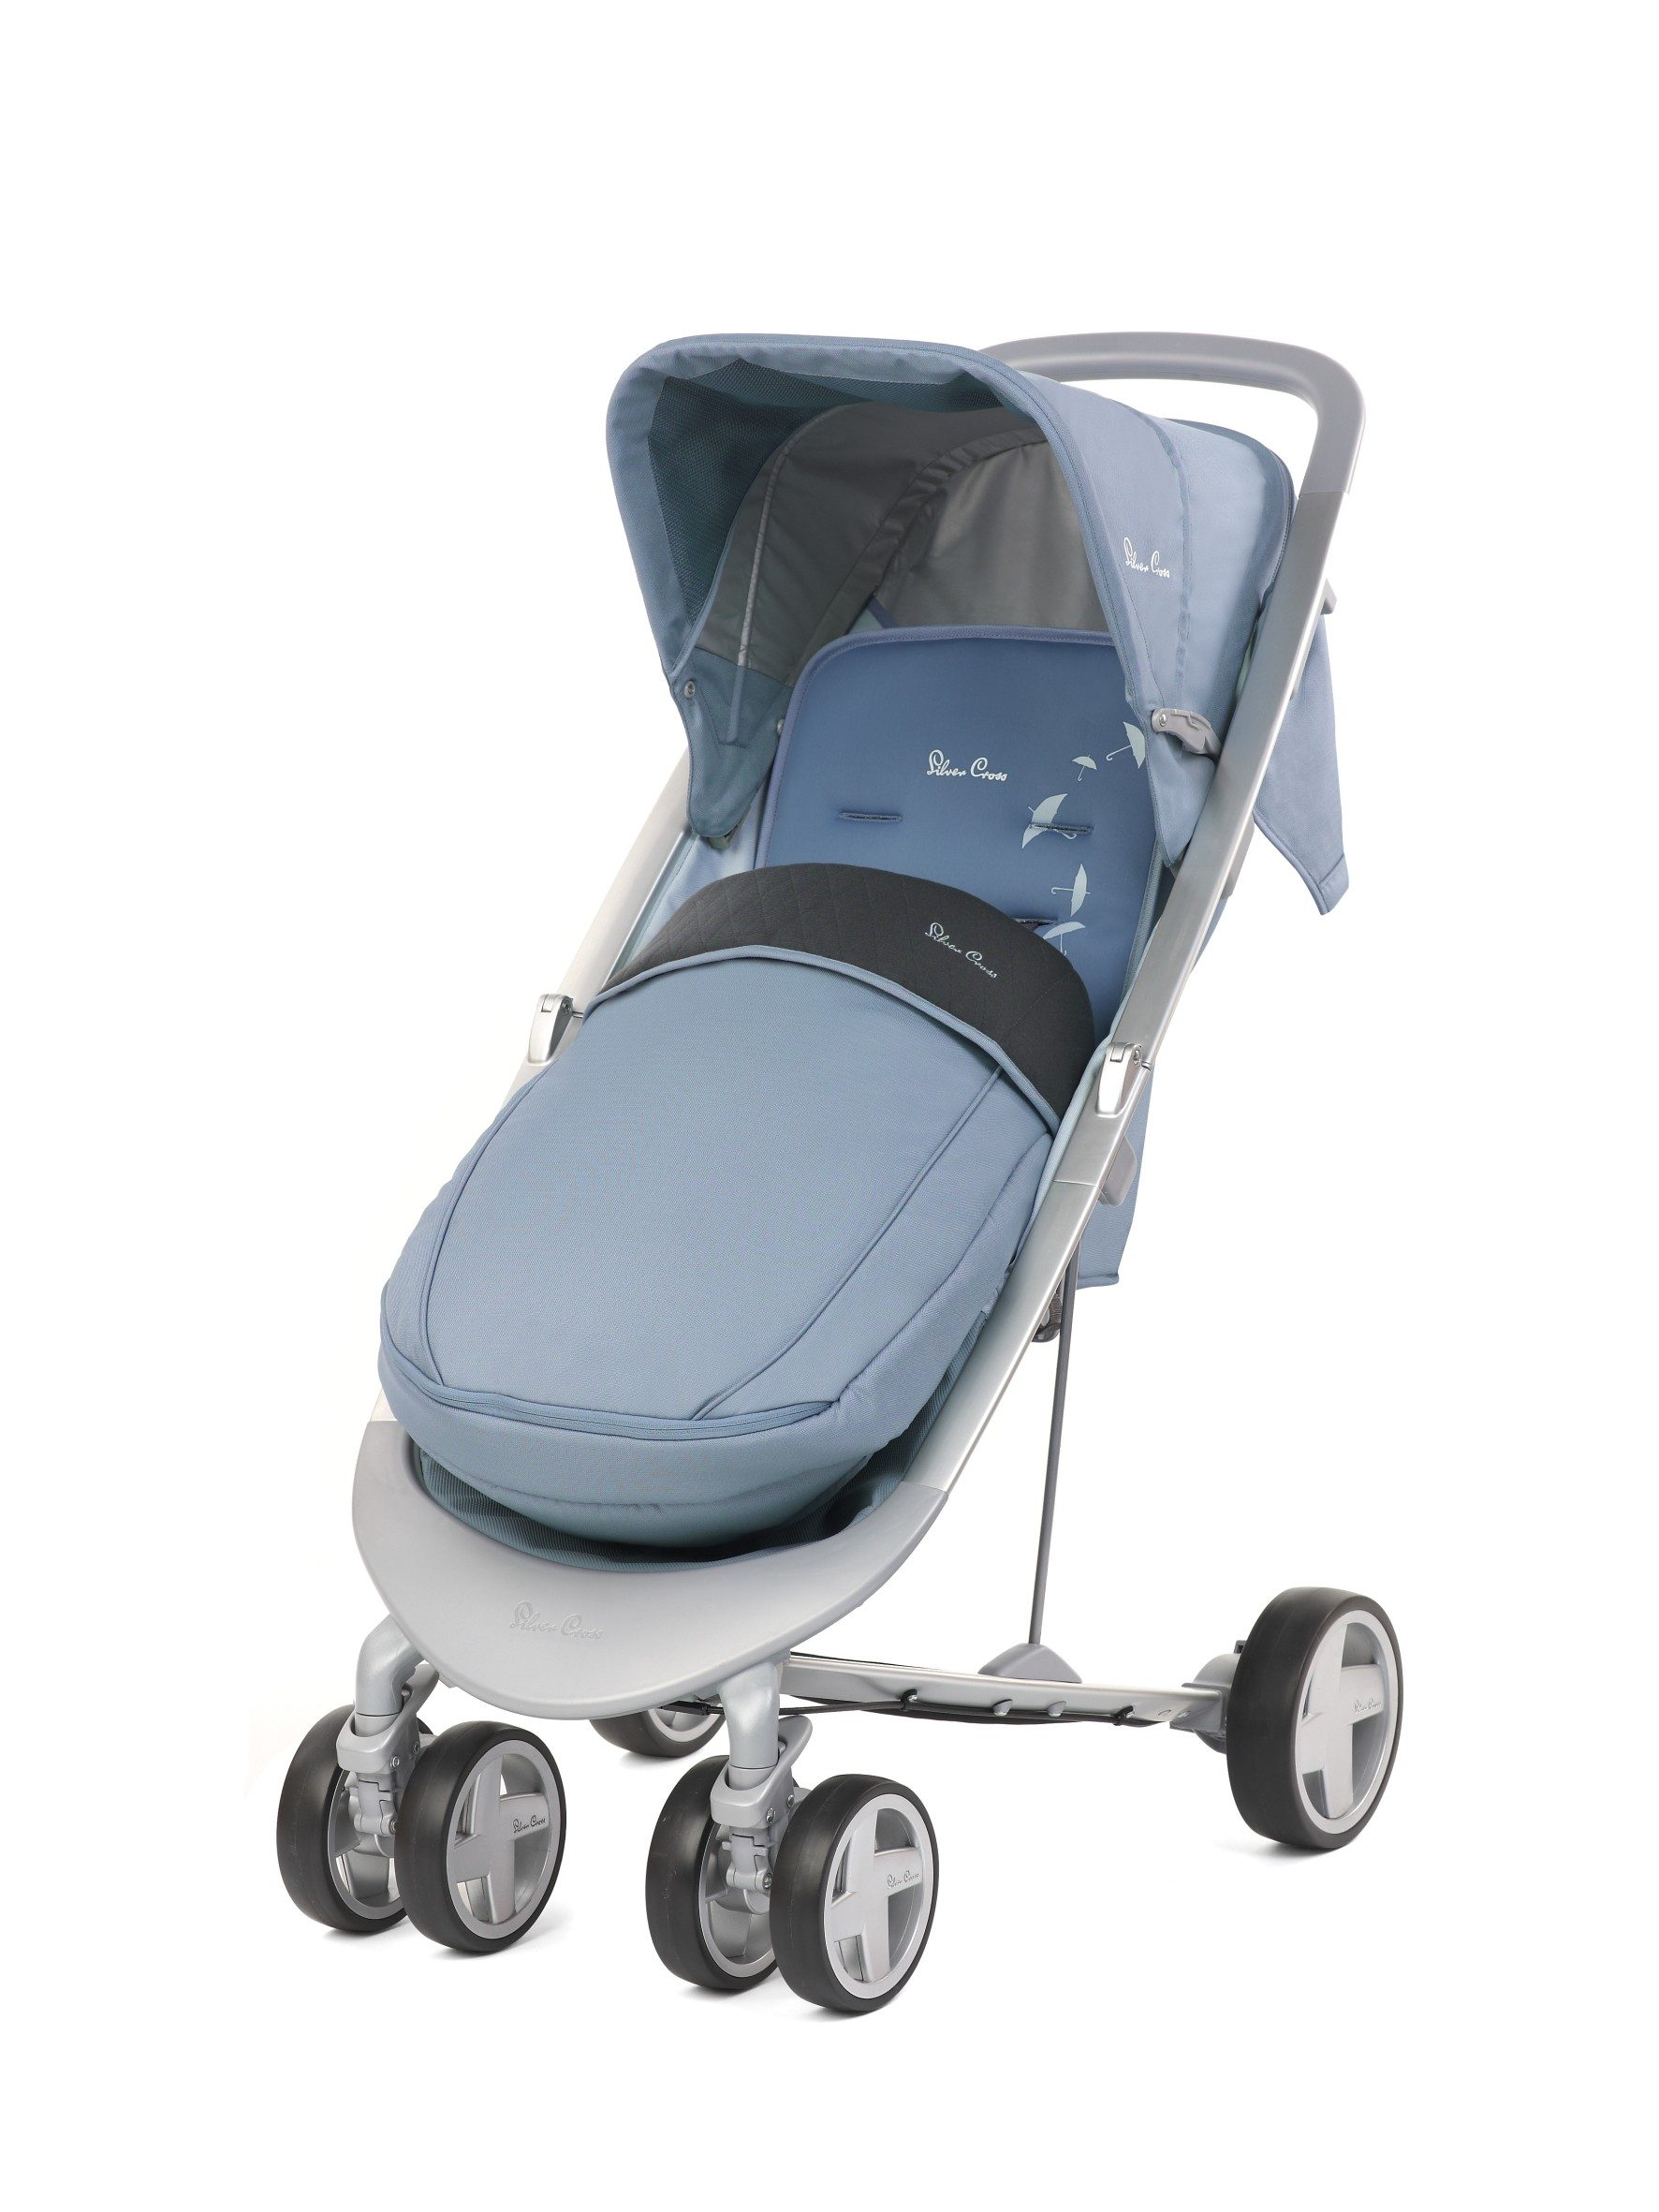 Silver Cross Pushchairs On Ebay Silver Cross Halo Pushchairs Prams Pushchairs